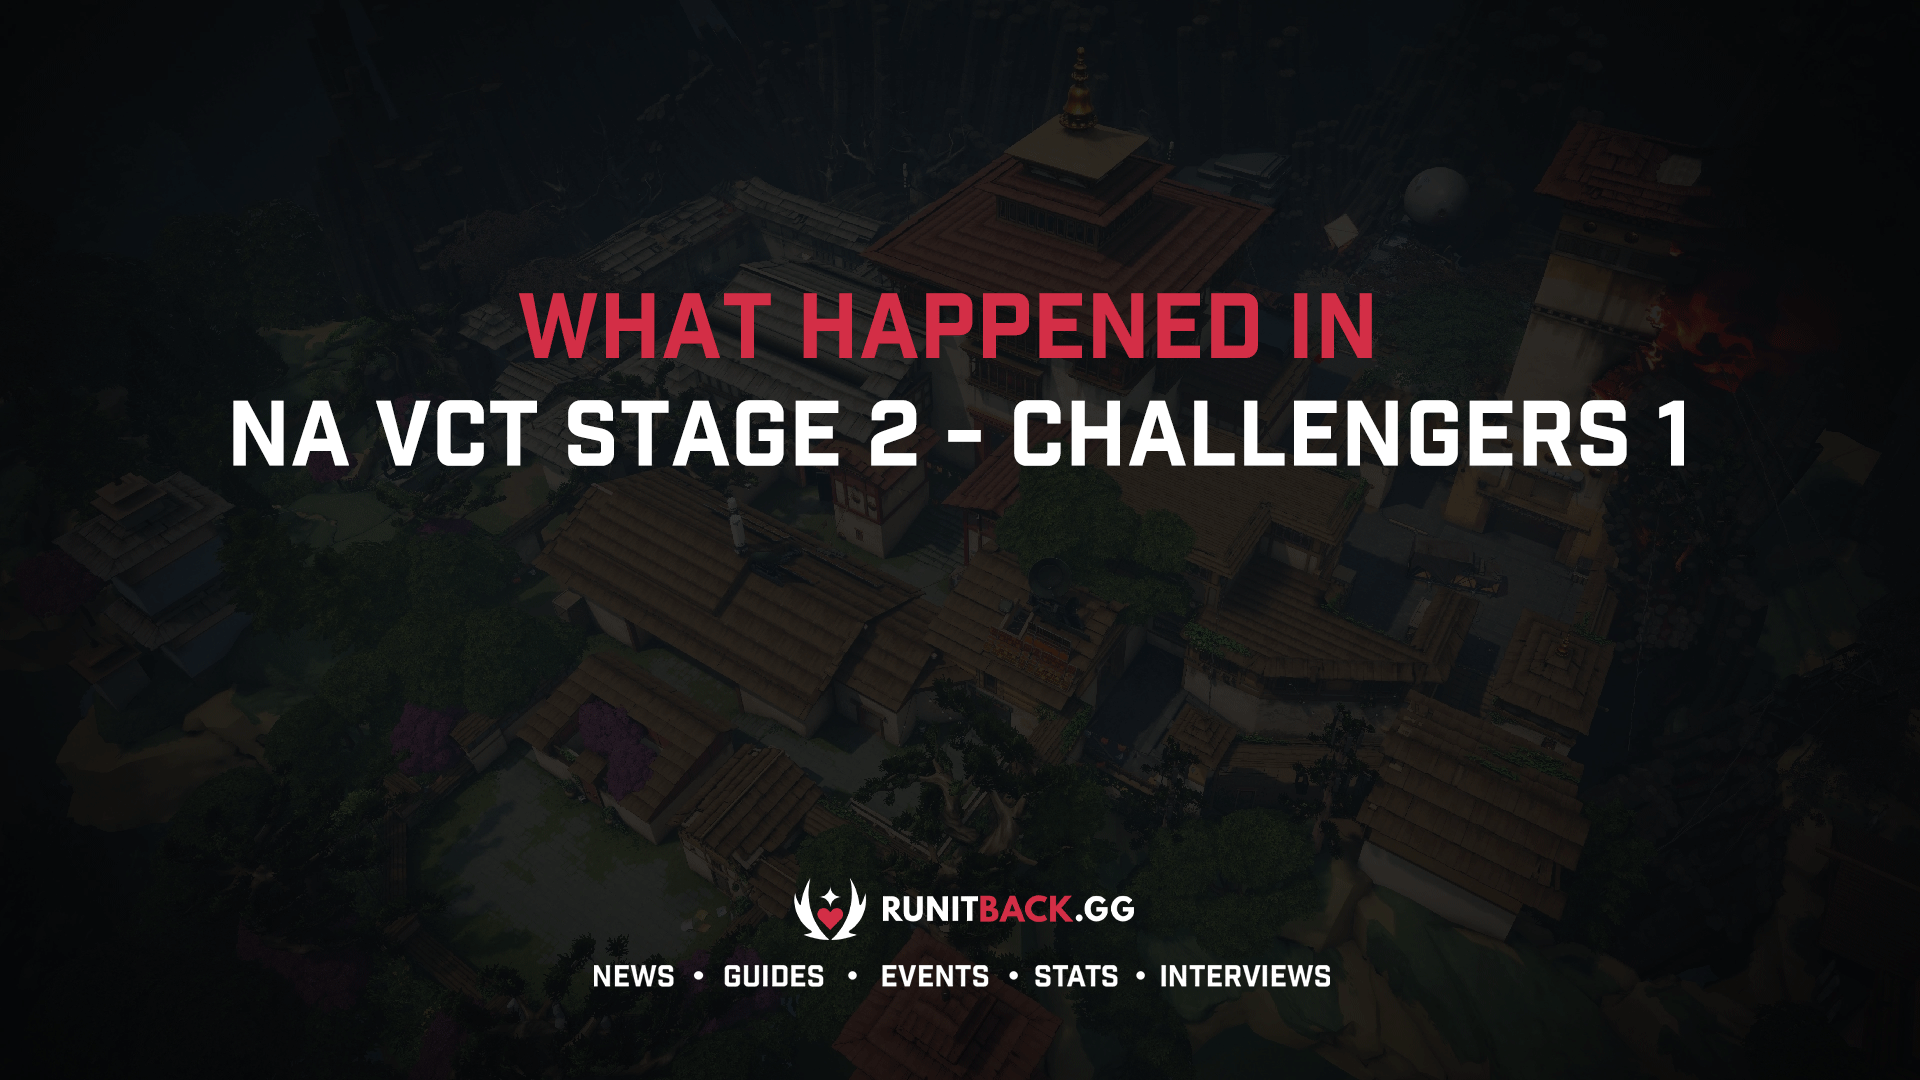 What happened in NA VCT Stage 2: Challengers 1